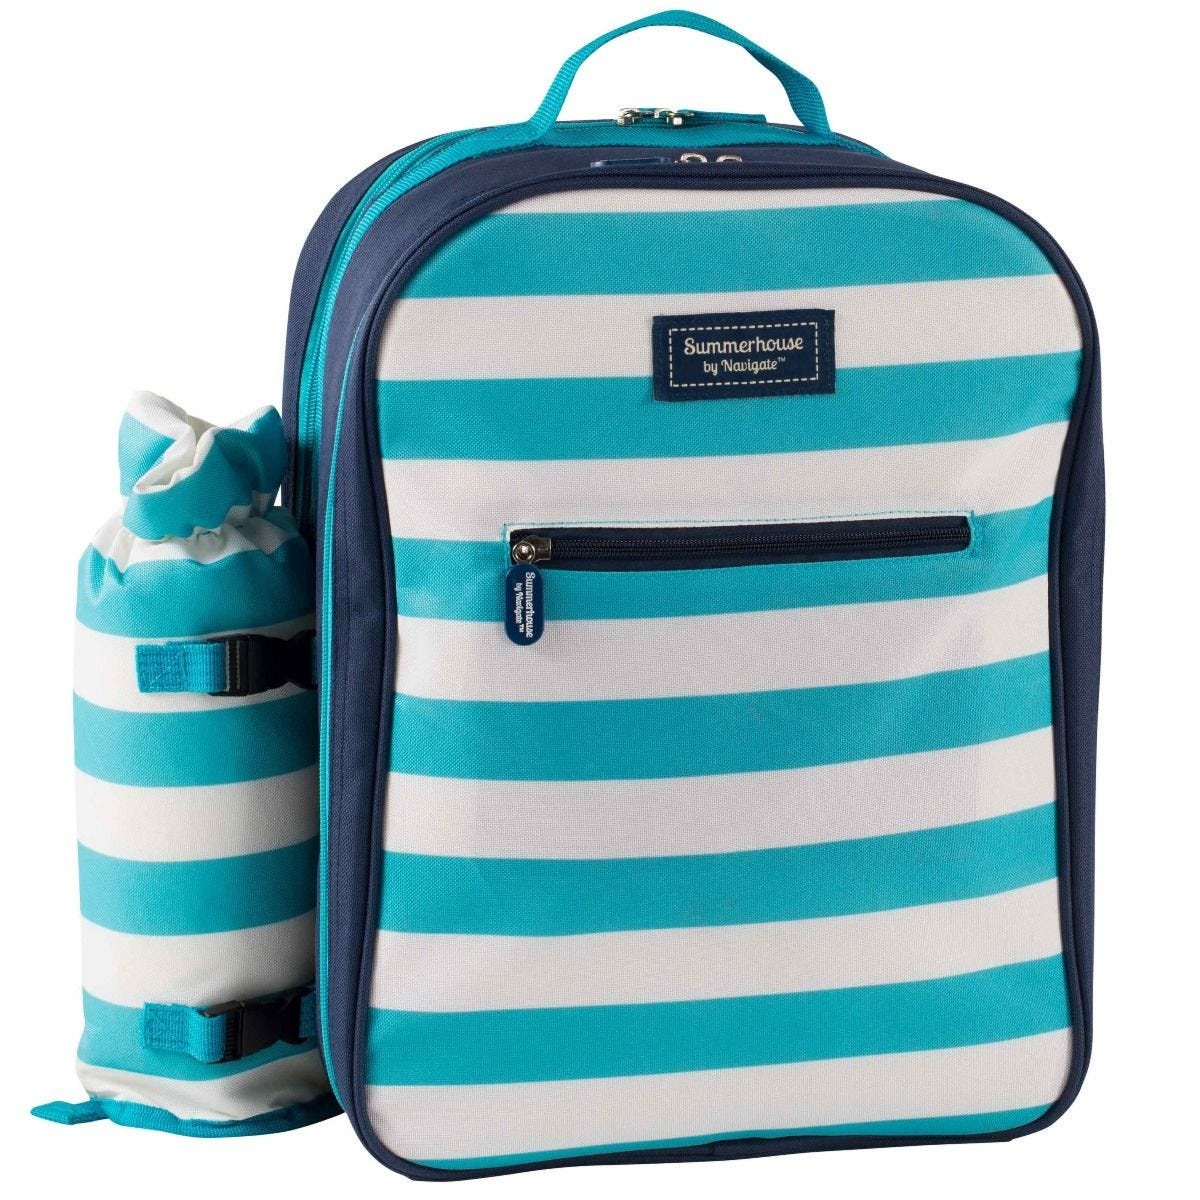 Summerhouse Coast 4 Person Backpack with Bottle Cooler - Aqua & White